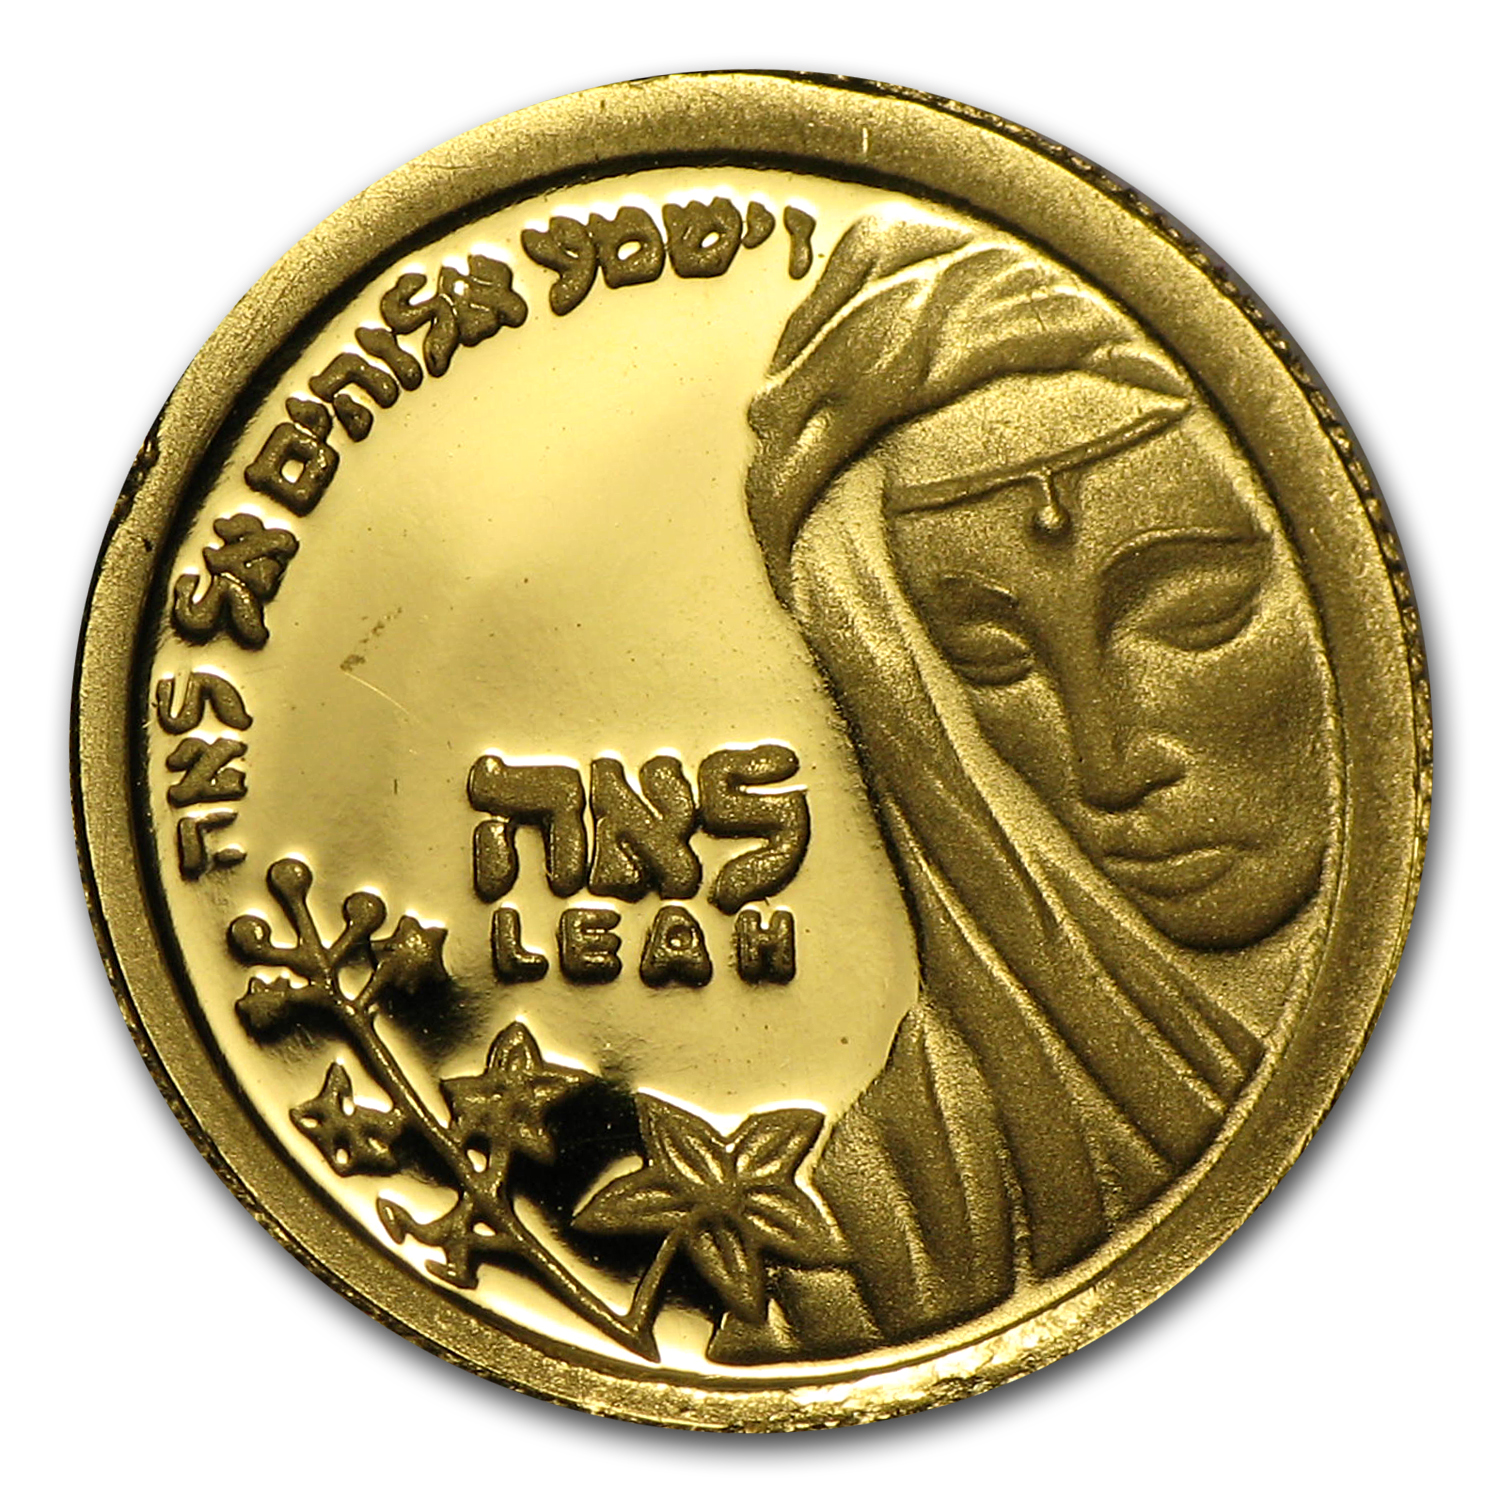 2008 Israel Leah-Smallest Pure Gold Medal AGW 1/25 oz